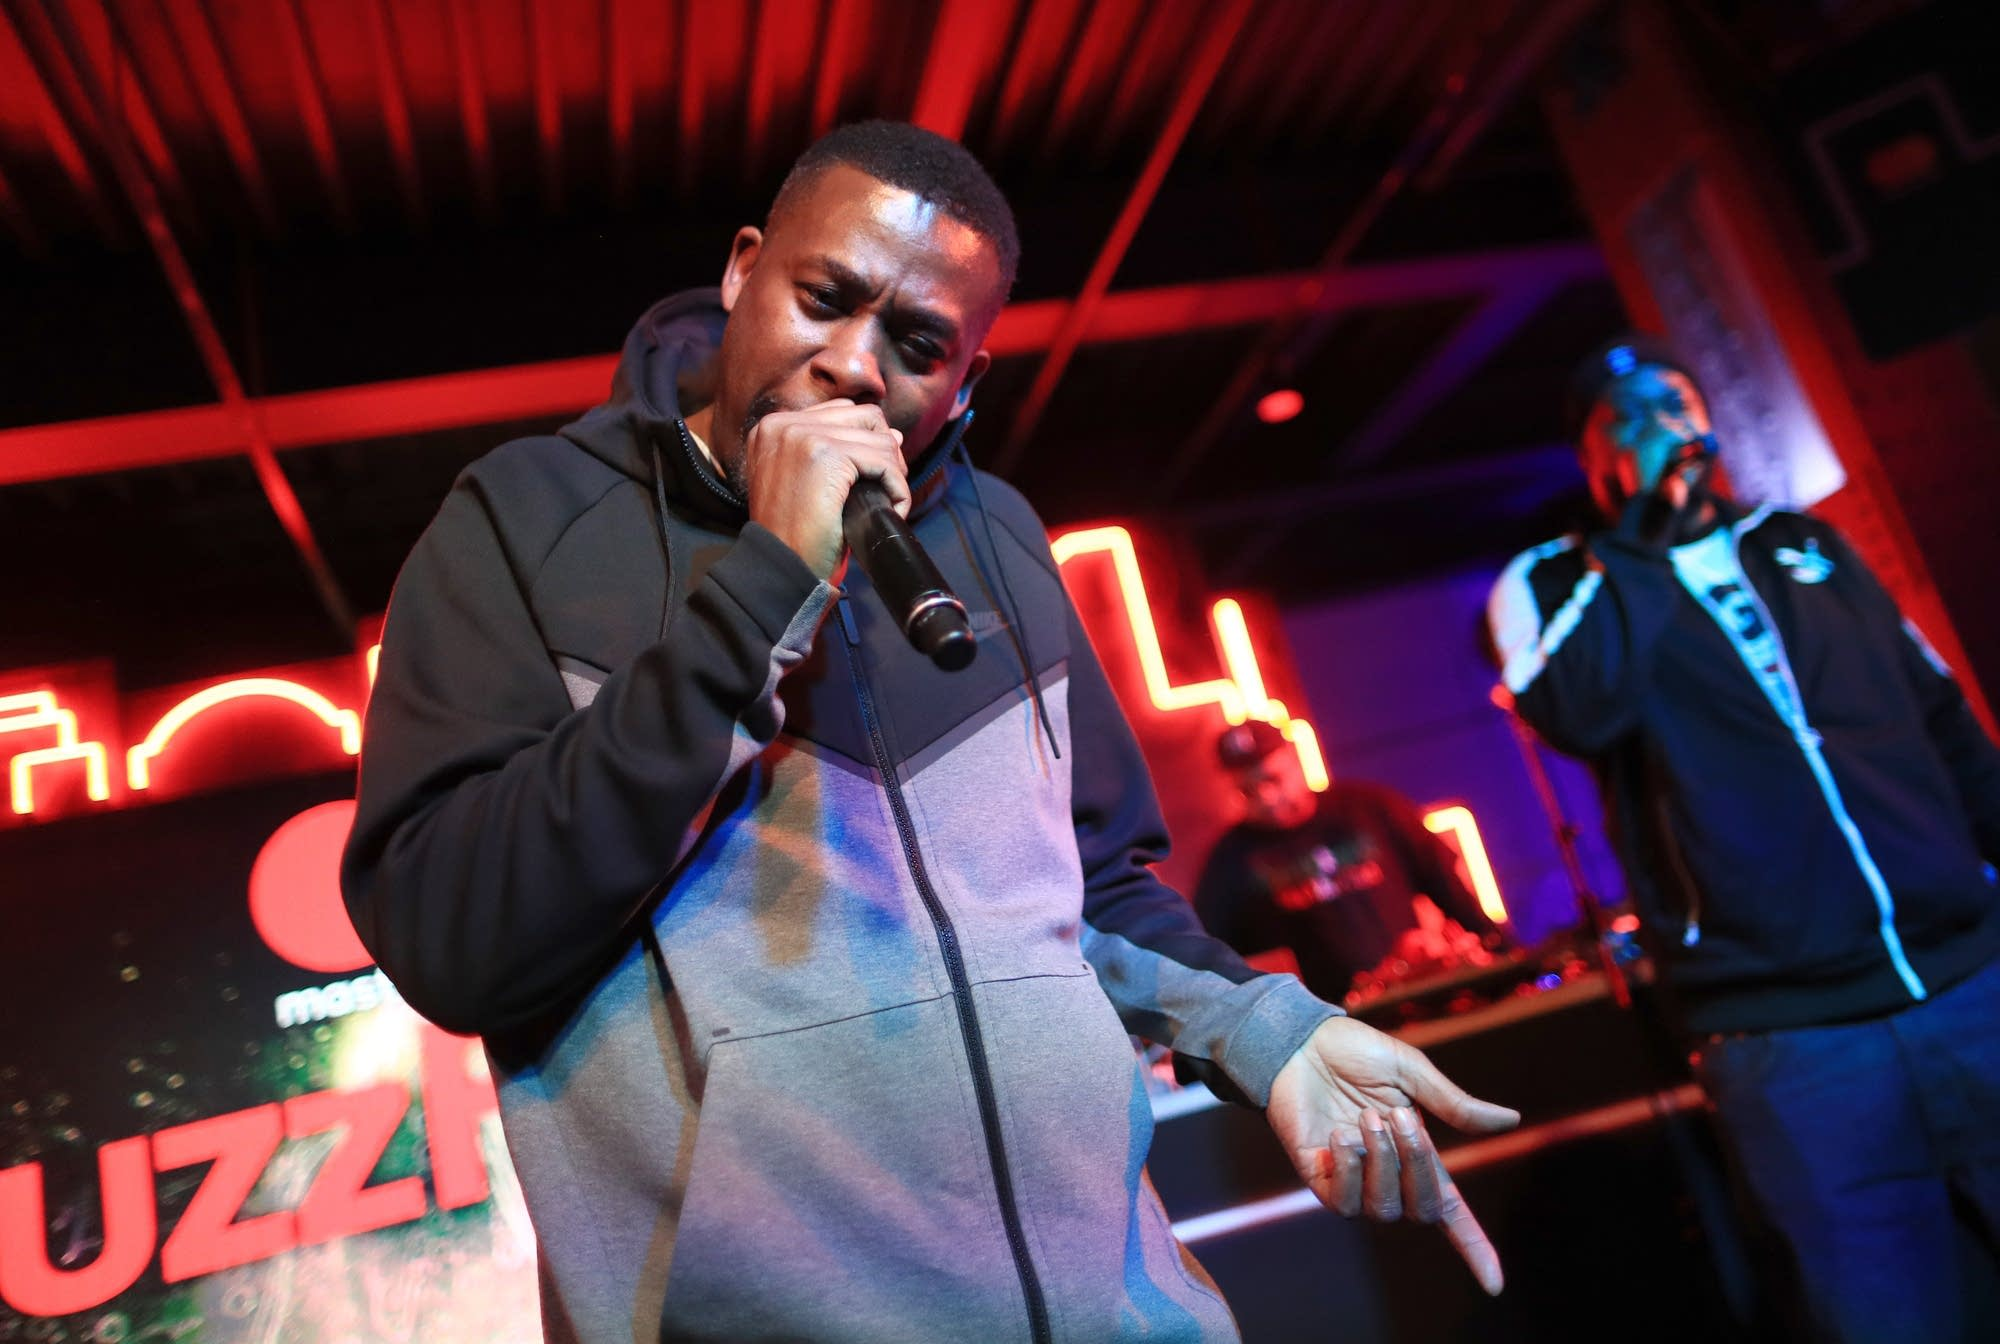 GZA performing onstage in 2018